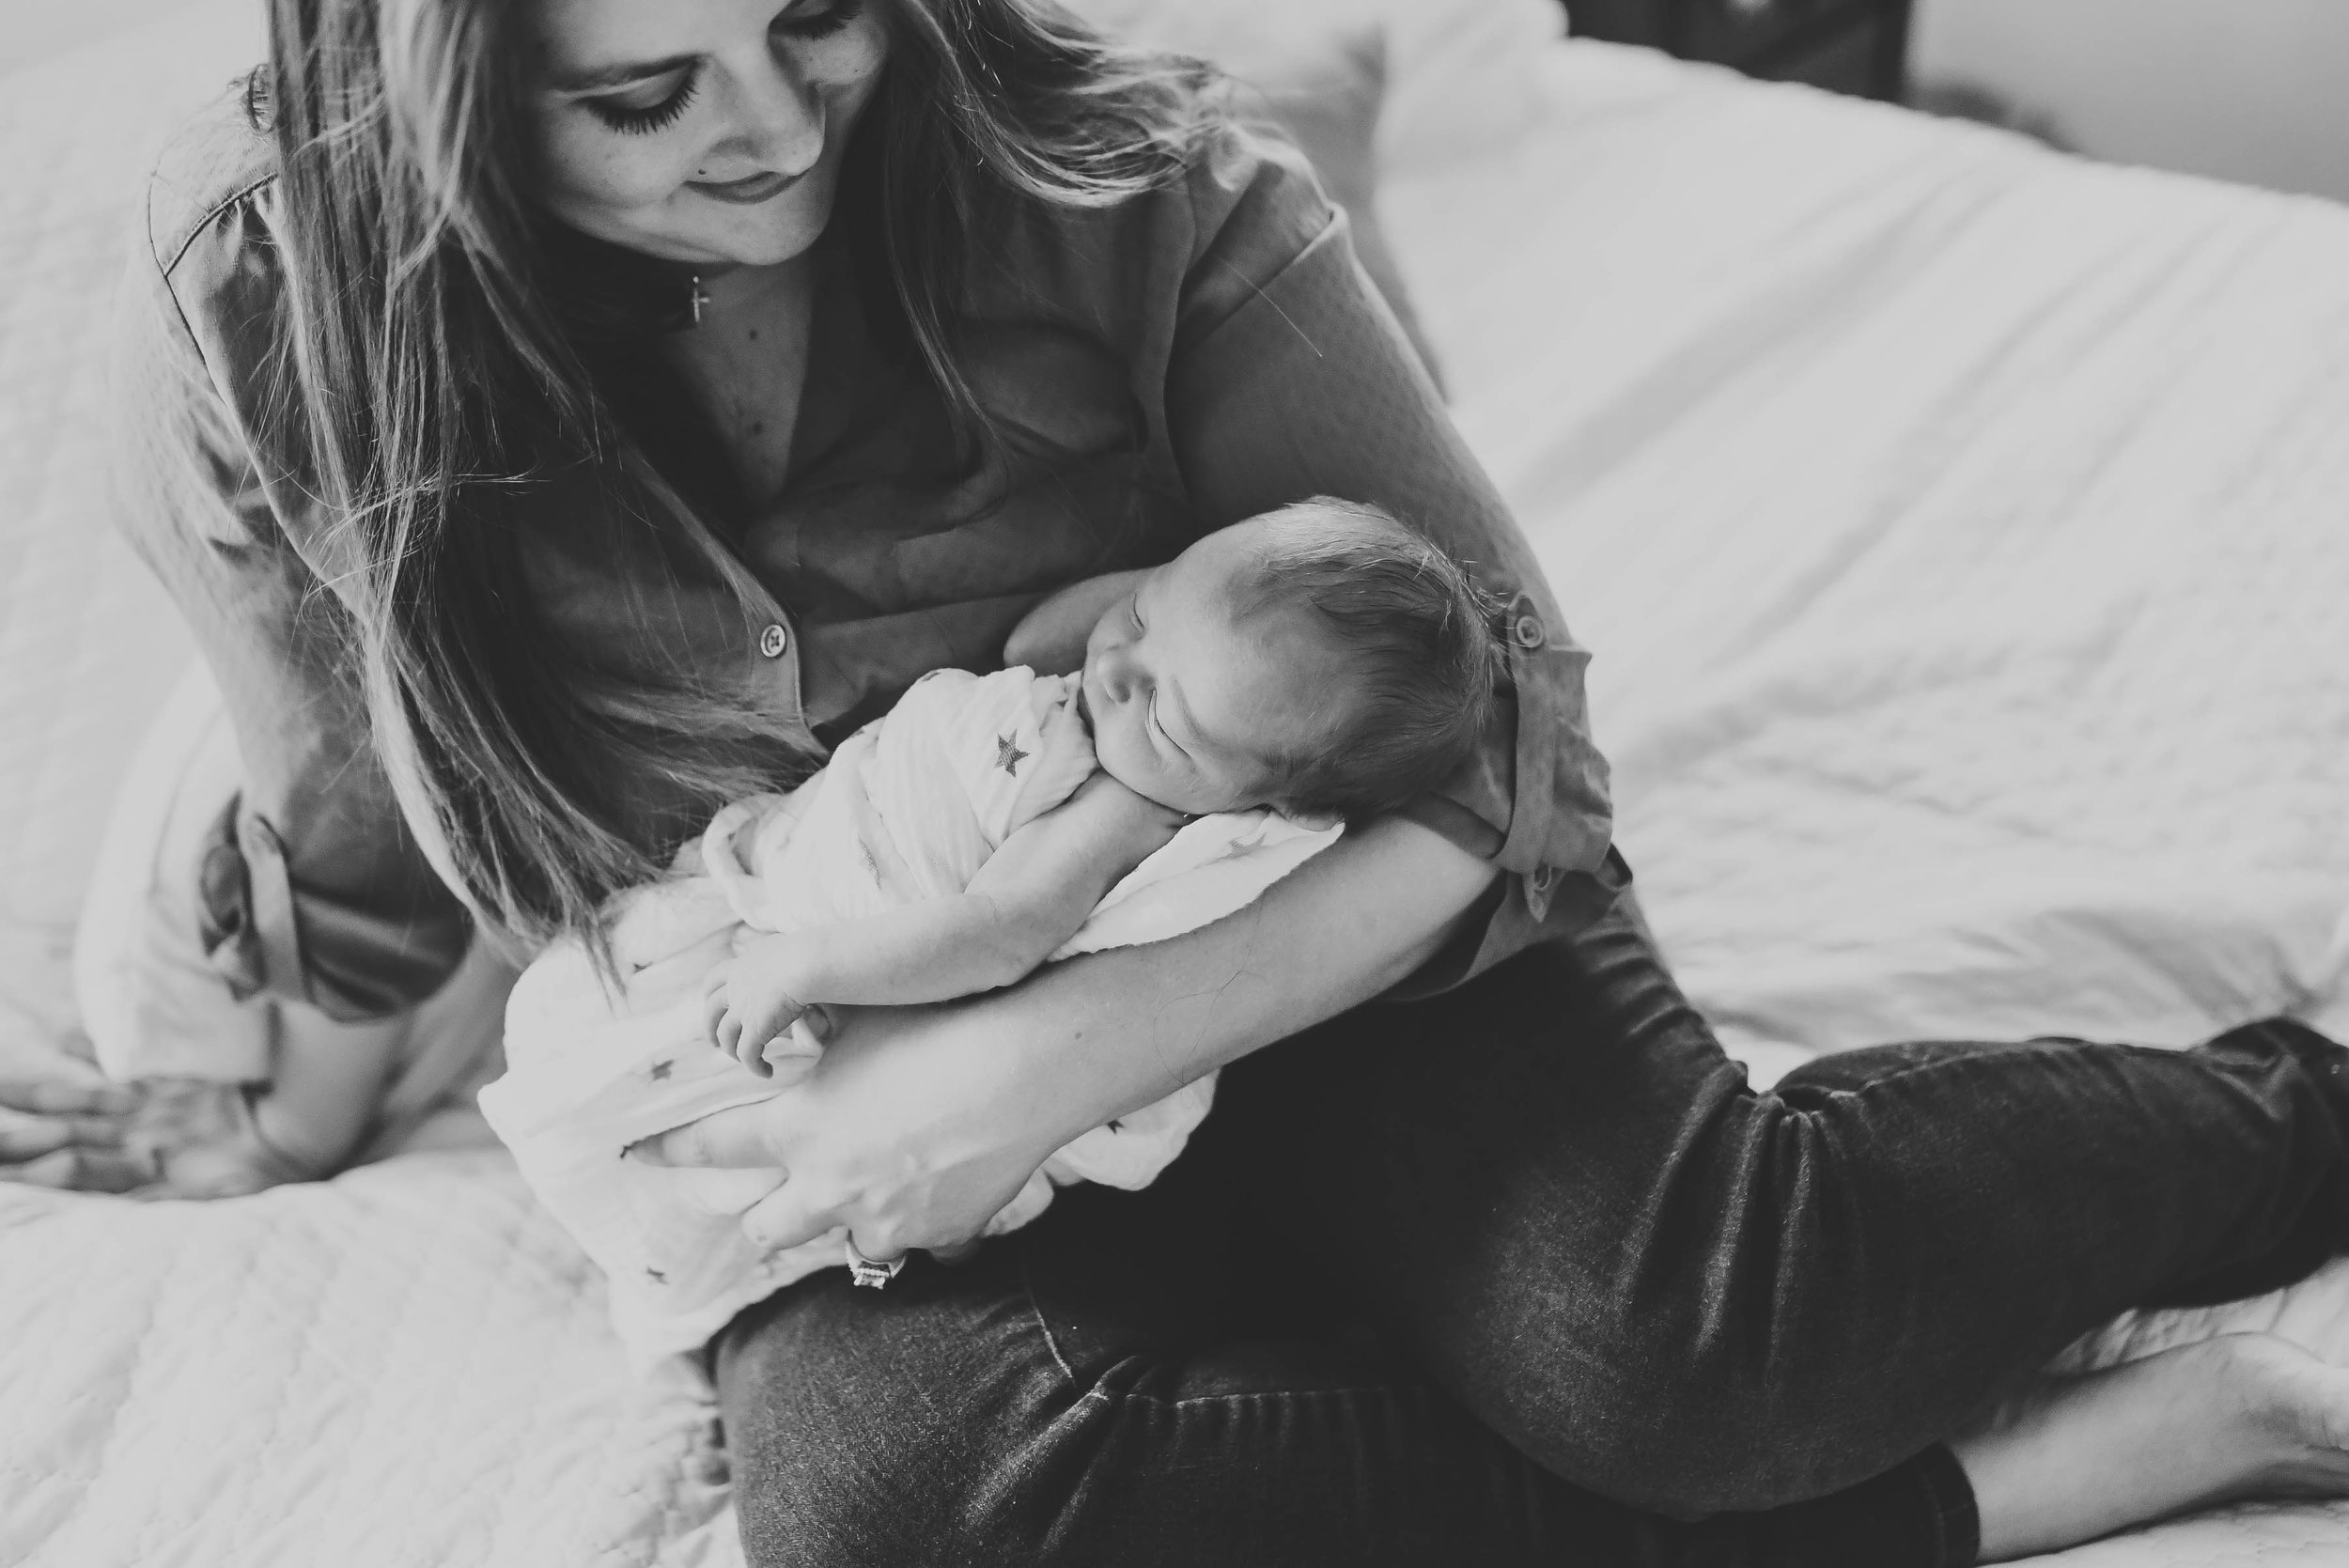 Photo Credit: Bree Linne Photography   She's pretty amazing! If you are in need of newborn or maternity pictures, definitely contact her!